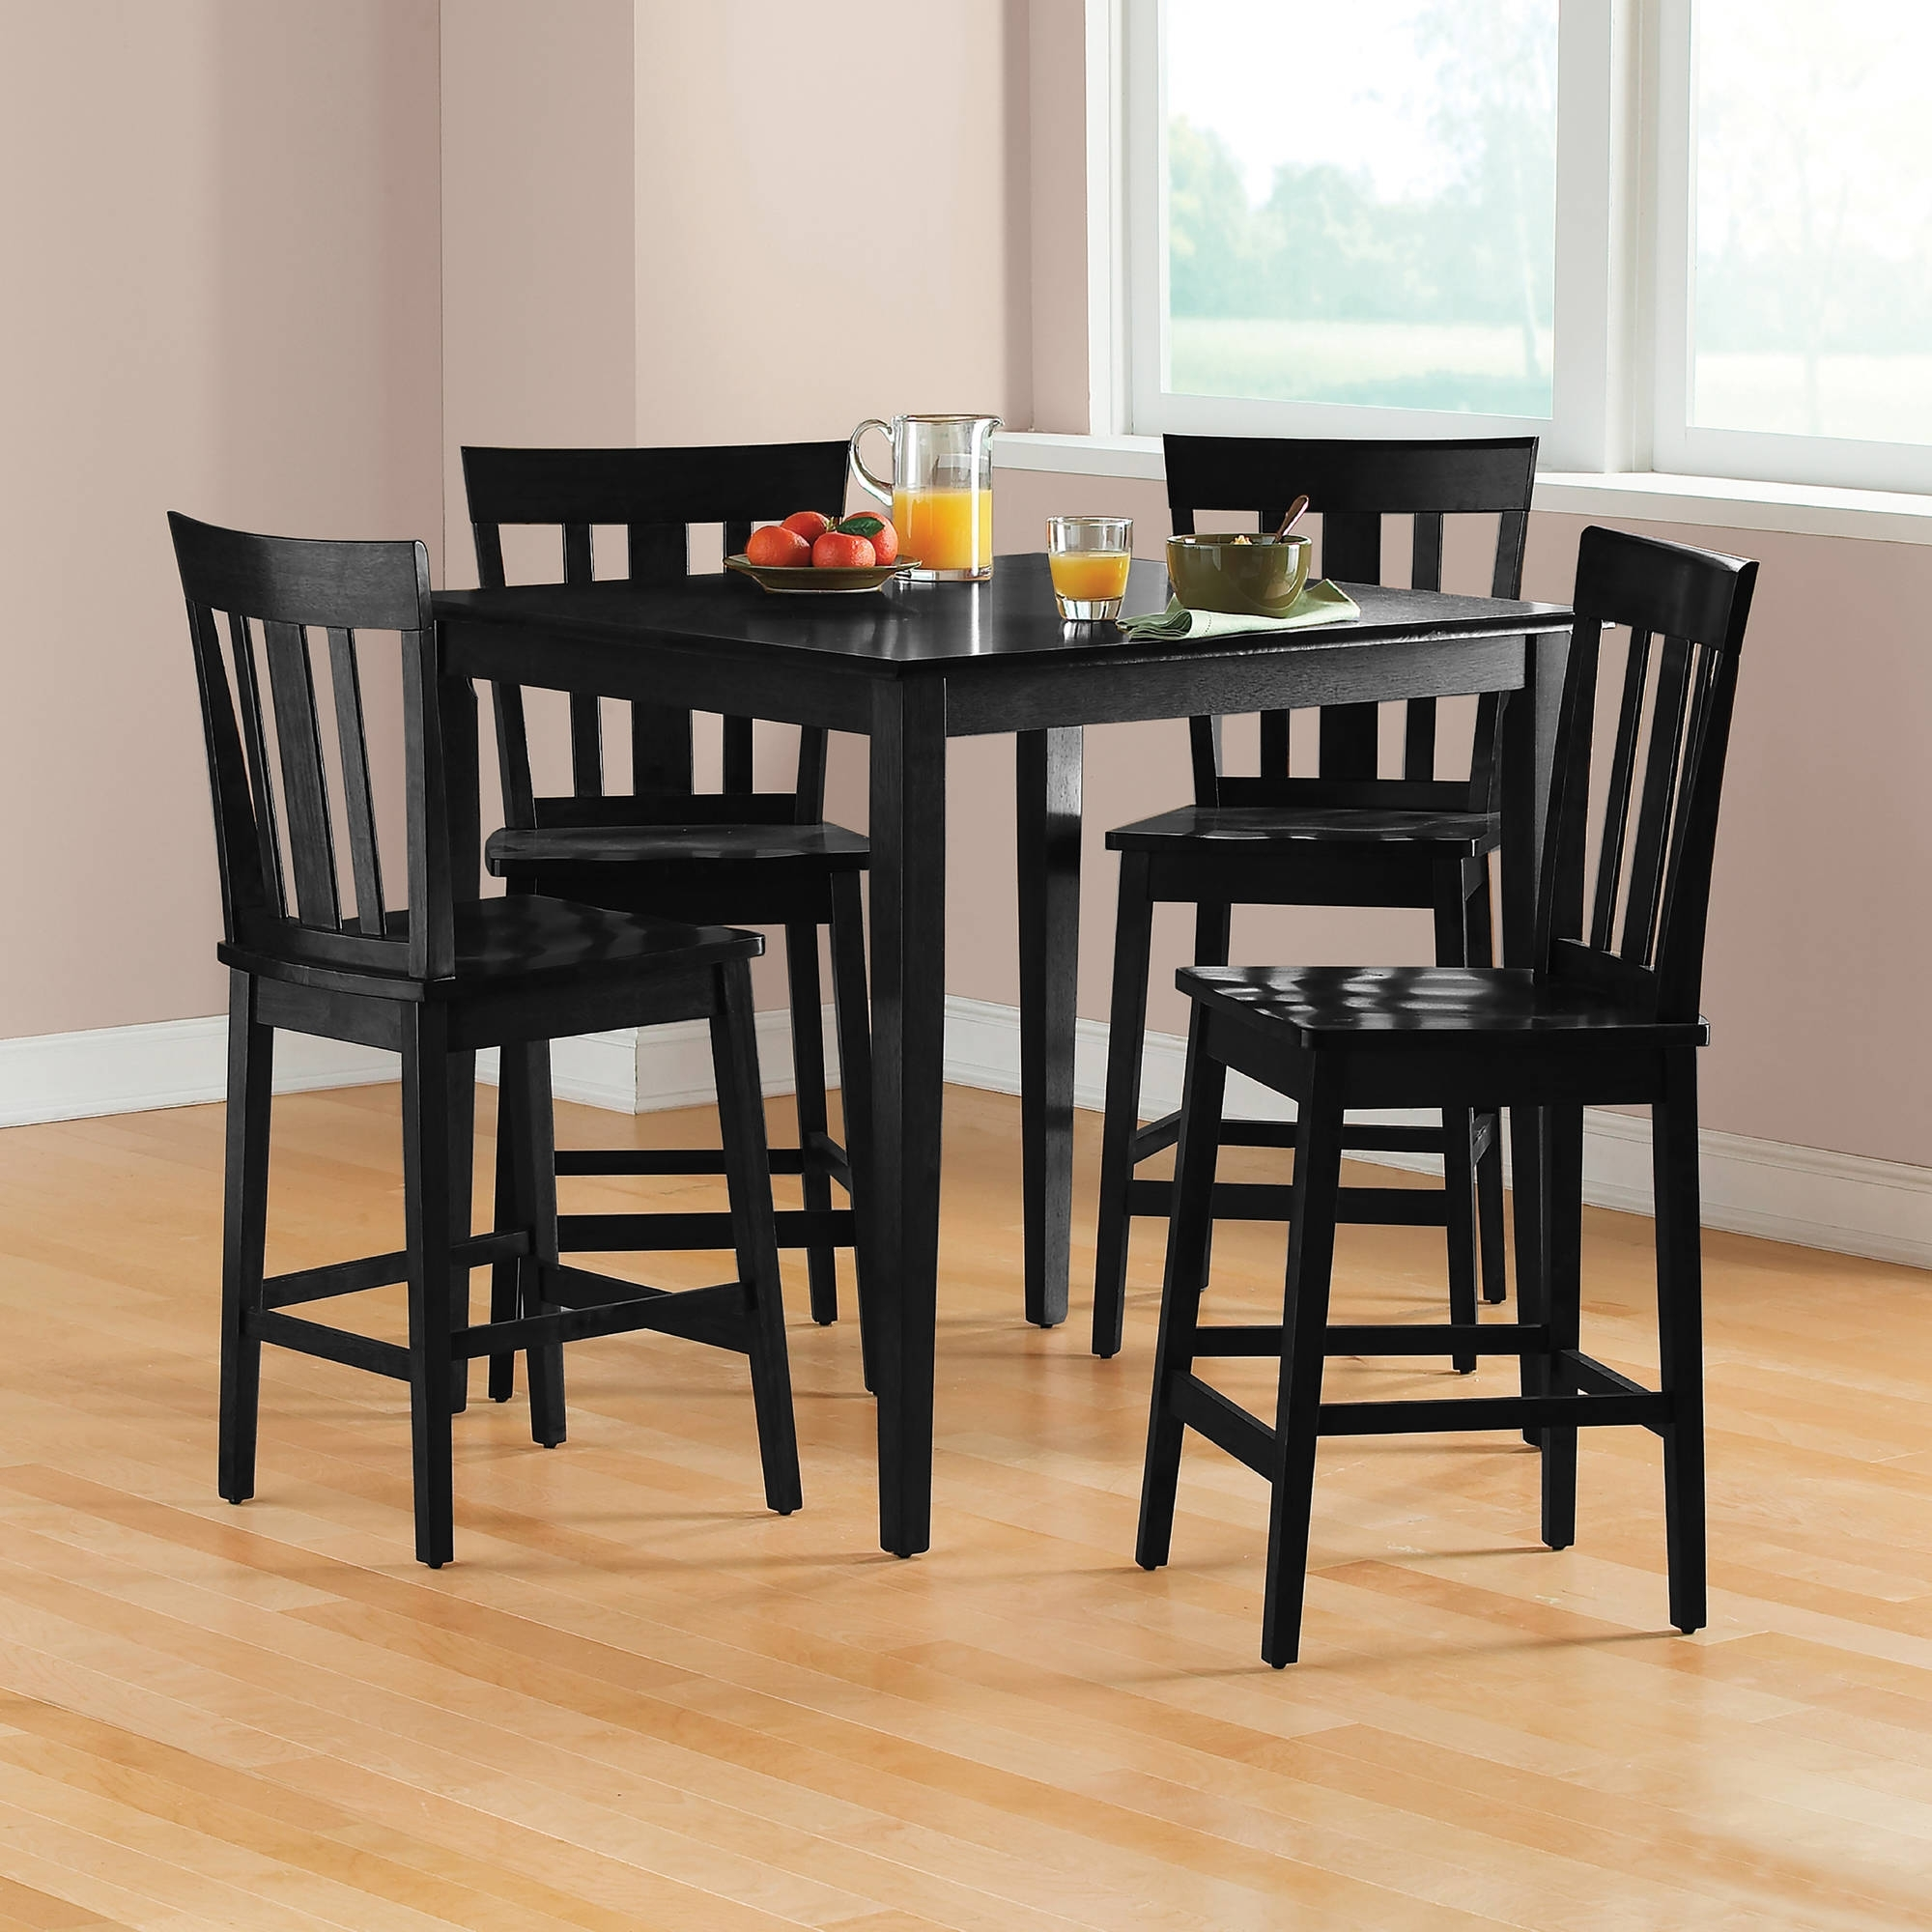 Mainstays 5 Piece Mission Counter Height Dining Set – Walmart Inside Latest Cheap Dining Room Chairs (Gallery 16 of 25)